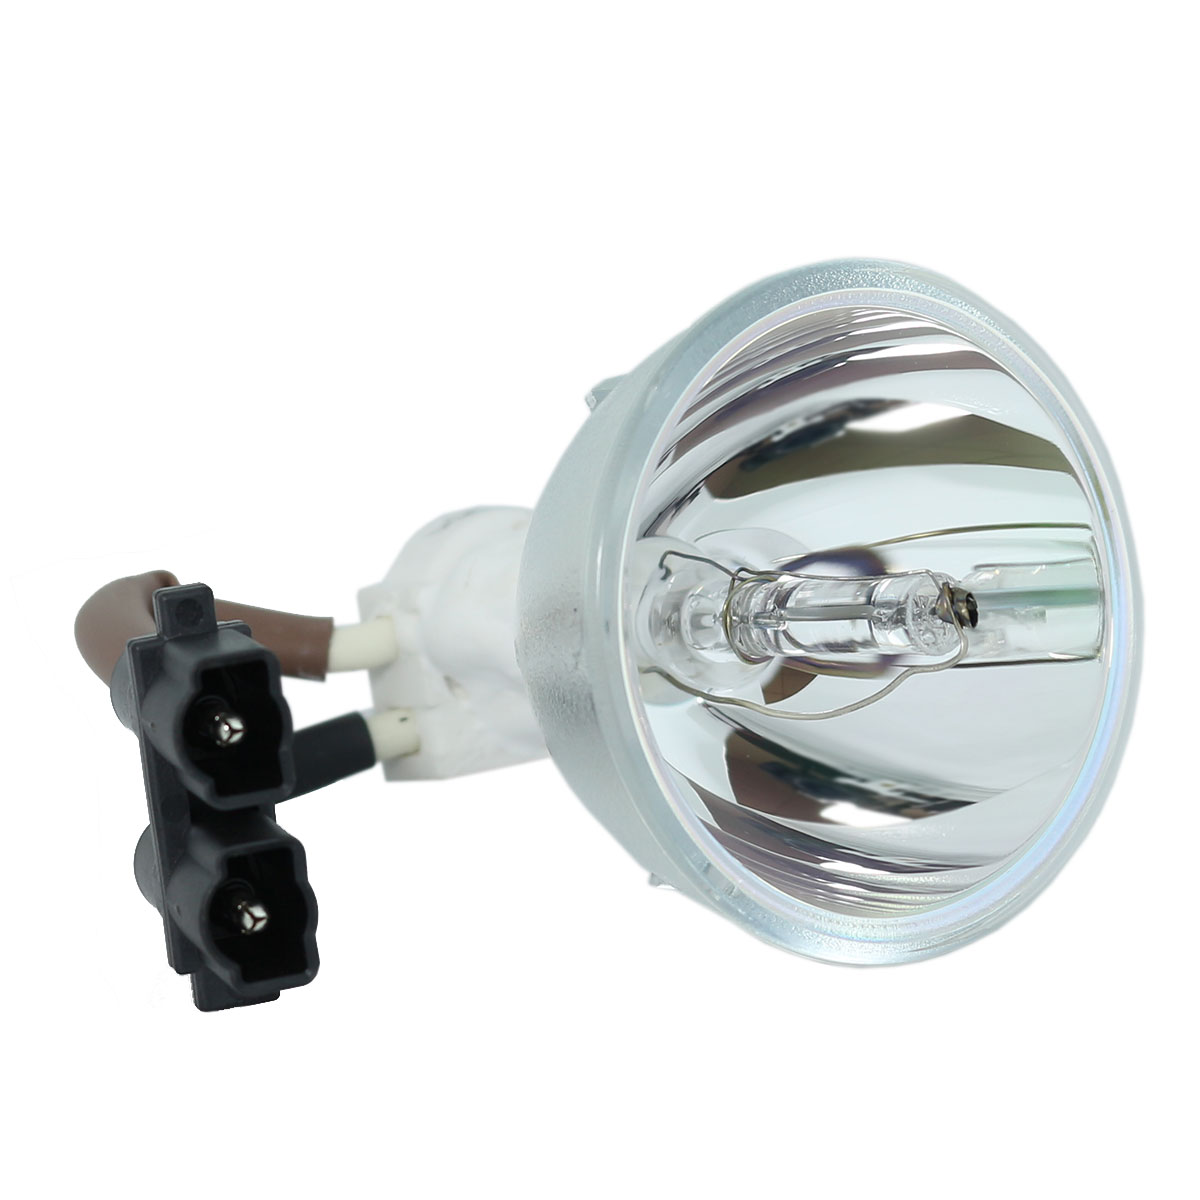 Compatible Bare Bulb BL-FP230C SP.85R01GC01 for OPTOMA DX205 DX625 DX627 DX733 EP719H EP749 TX800 EP38MXB Projector Lamp Bulb dunlop sp winter ice 02 205 65 r15 94t